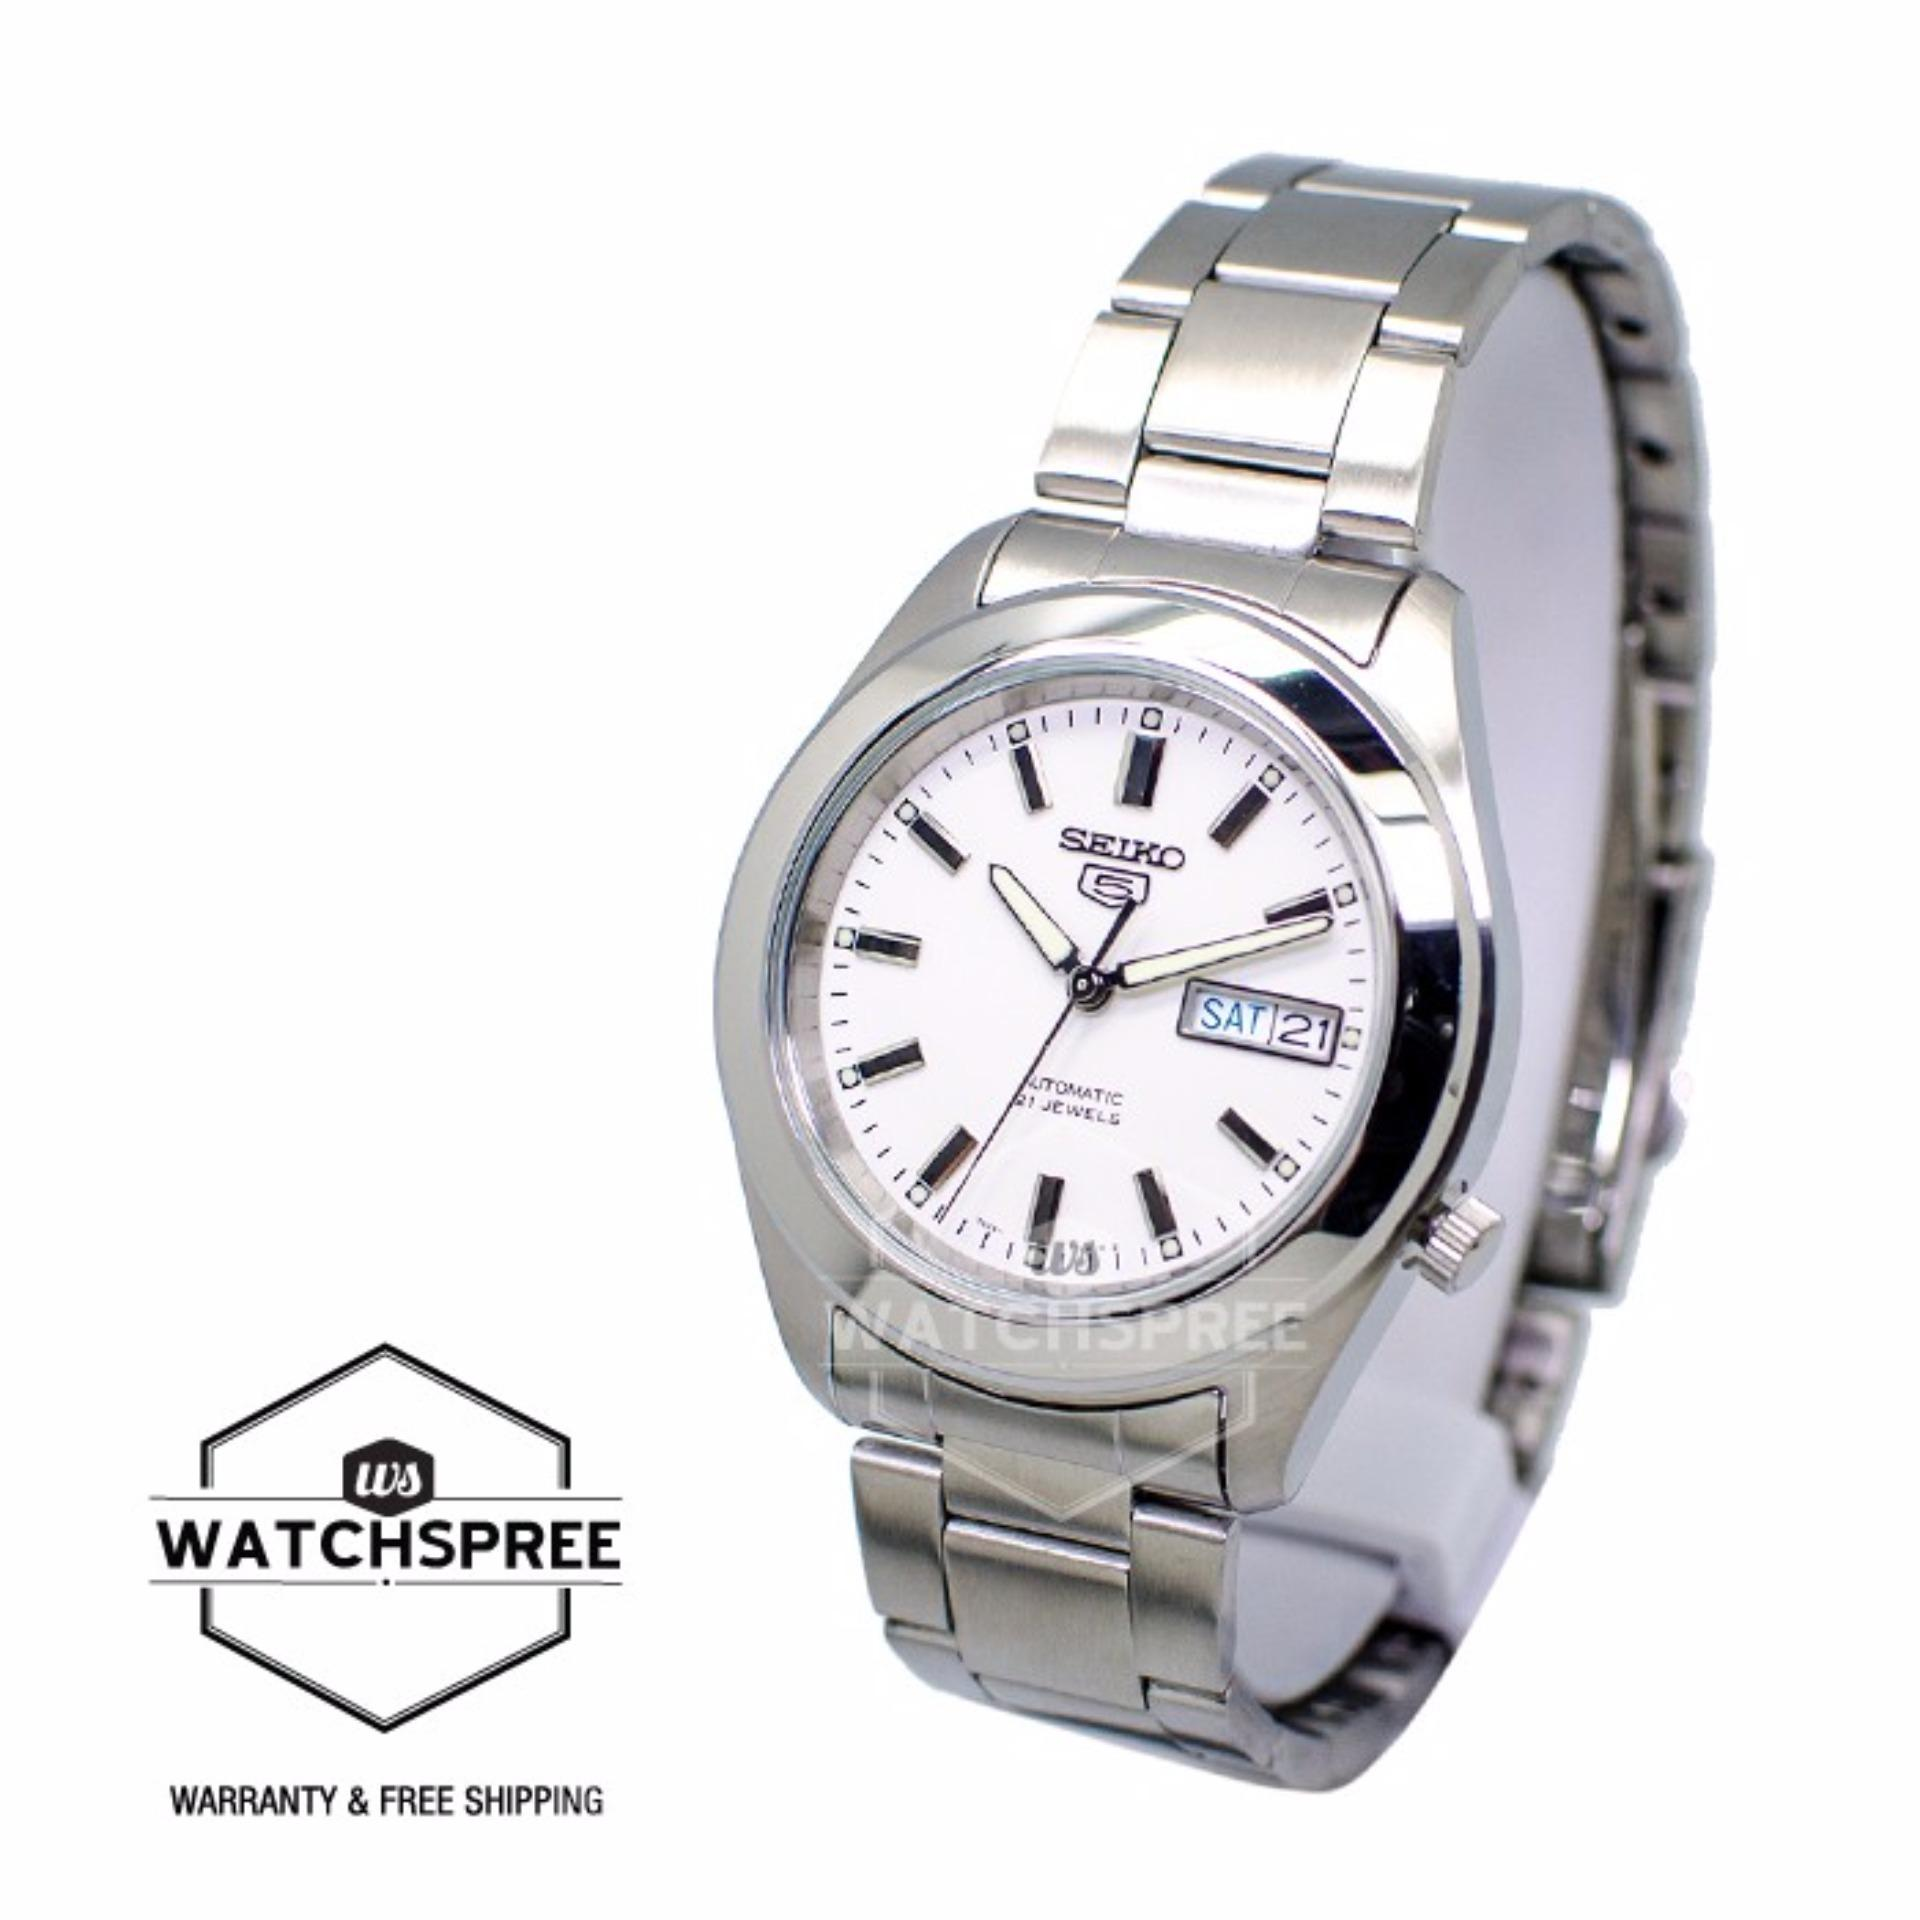 Seiko Ssa093k1 Automatic Green Dial Jam Pria Ssa093 Daftar Harga 5 Sports Mens Srp681k1 Tangan Srp681 Silver Stainless Snkm61k1 White Day Date Snkm61